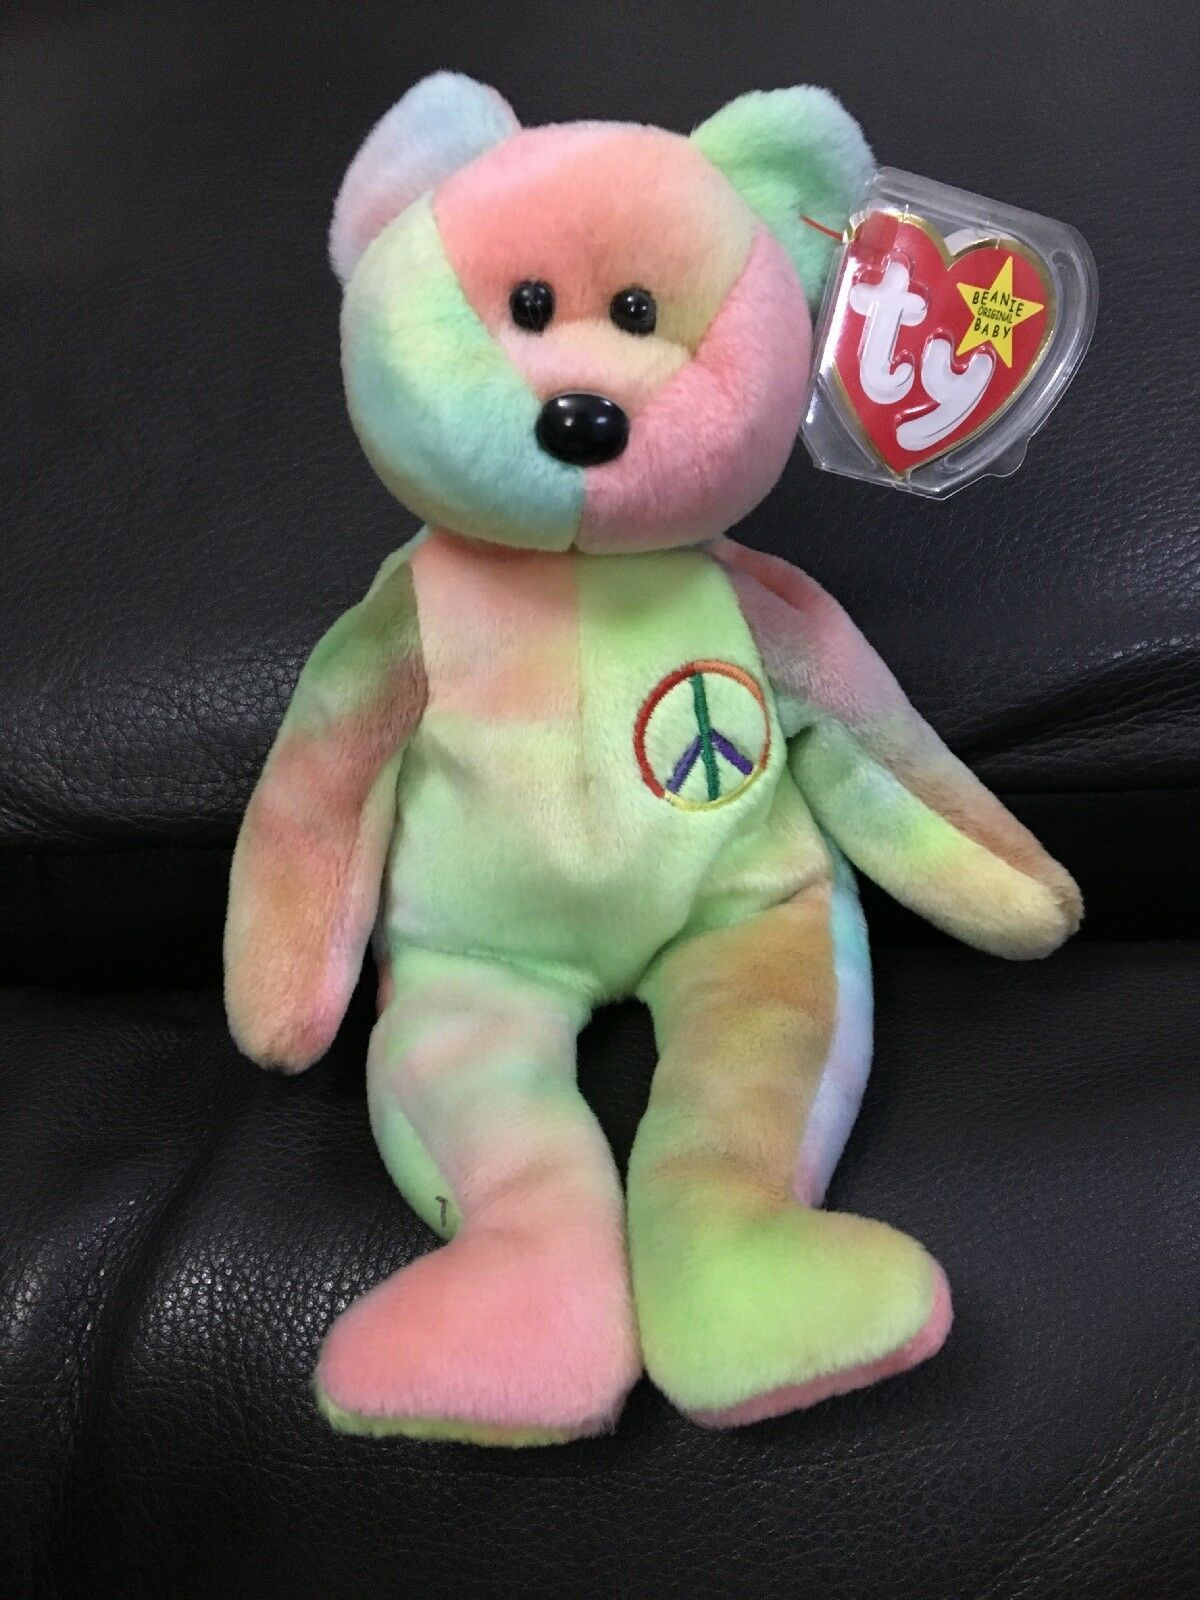 Rare TY Beanie Babies Teddy Peace Retired Bear Unique - Immaculate Condition